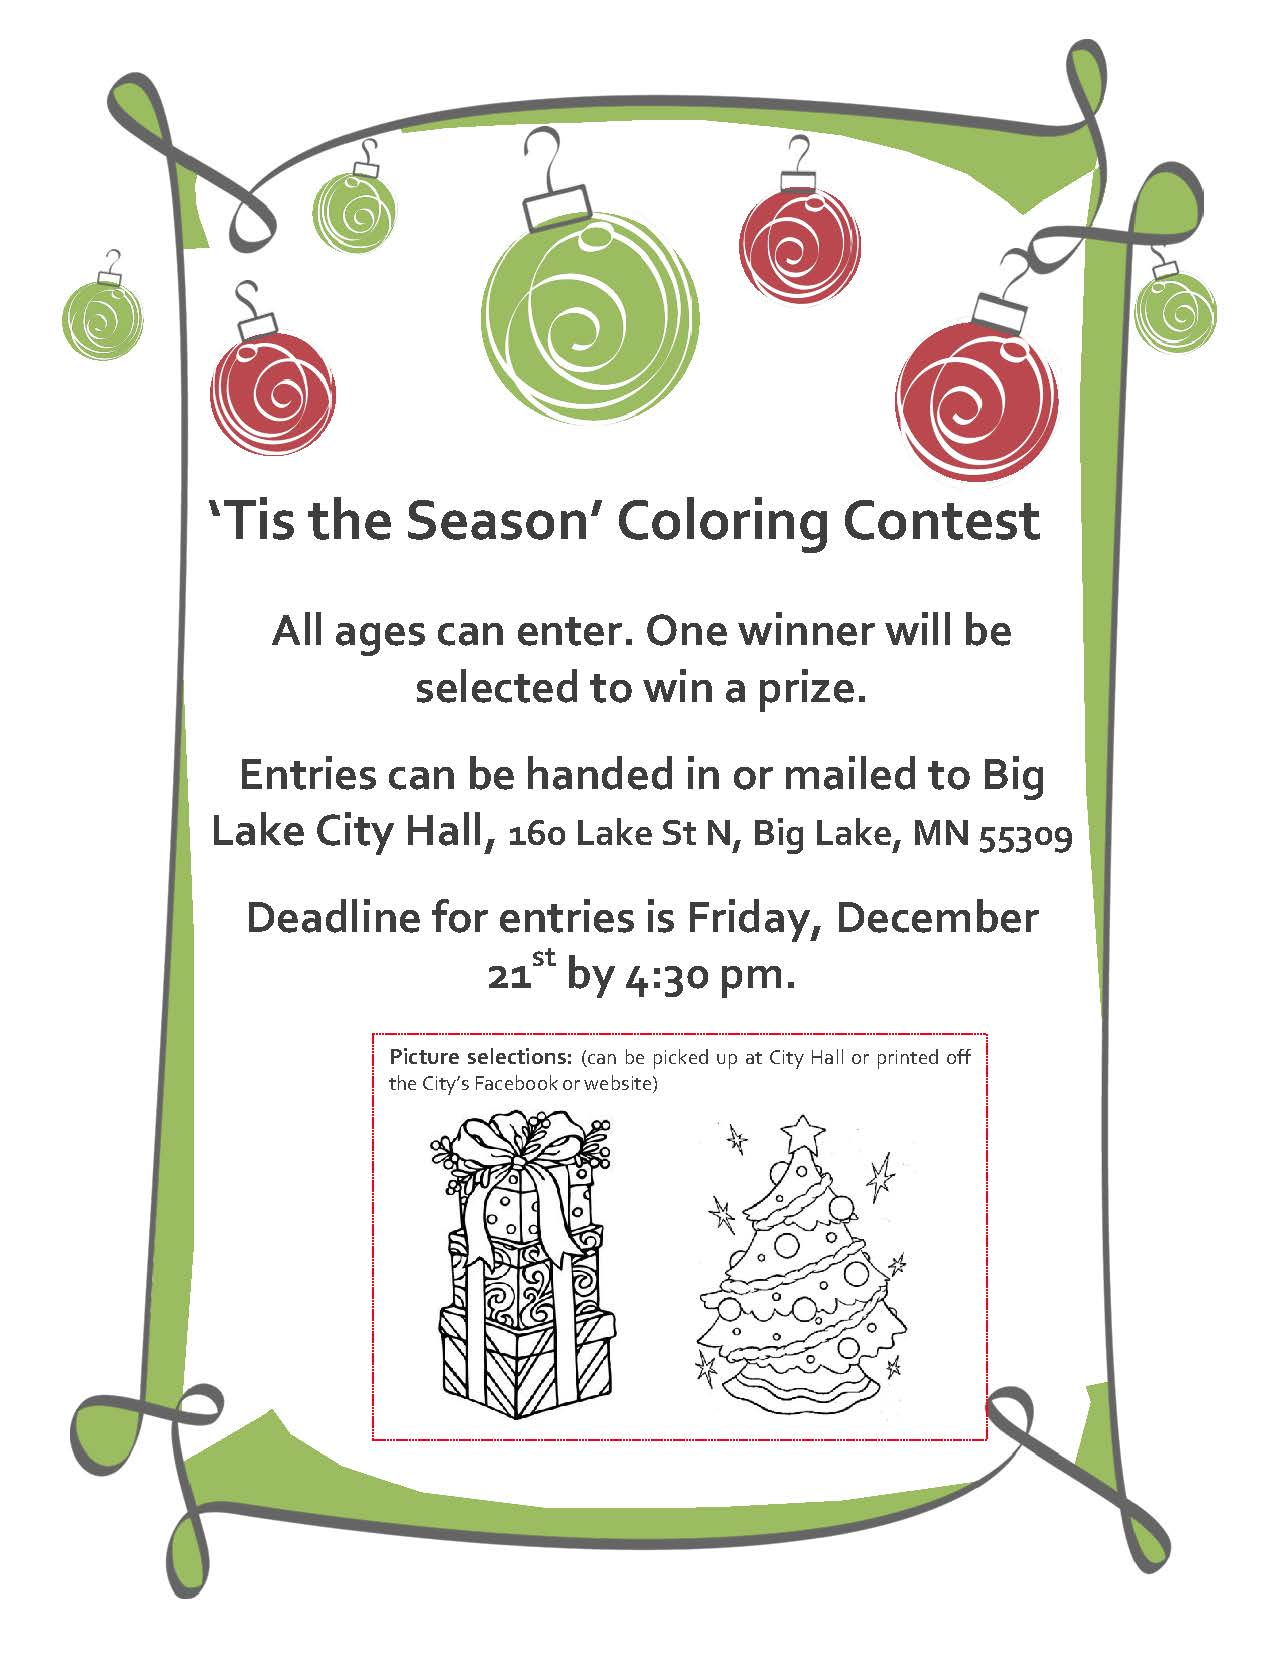 Tis the Season - Coloring Contest Flyer